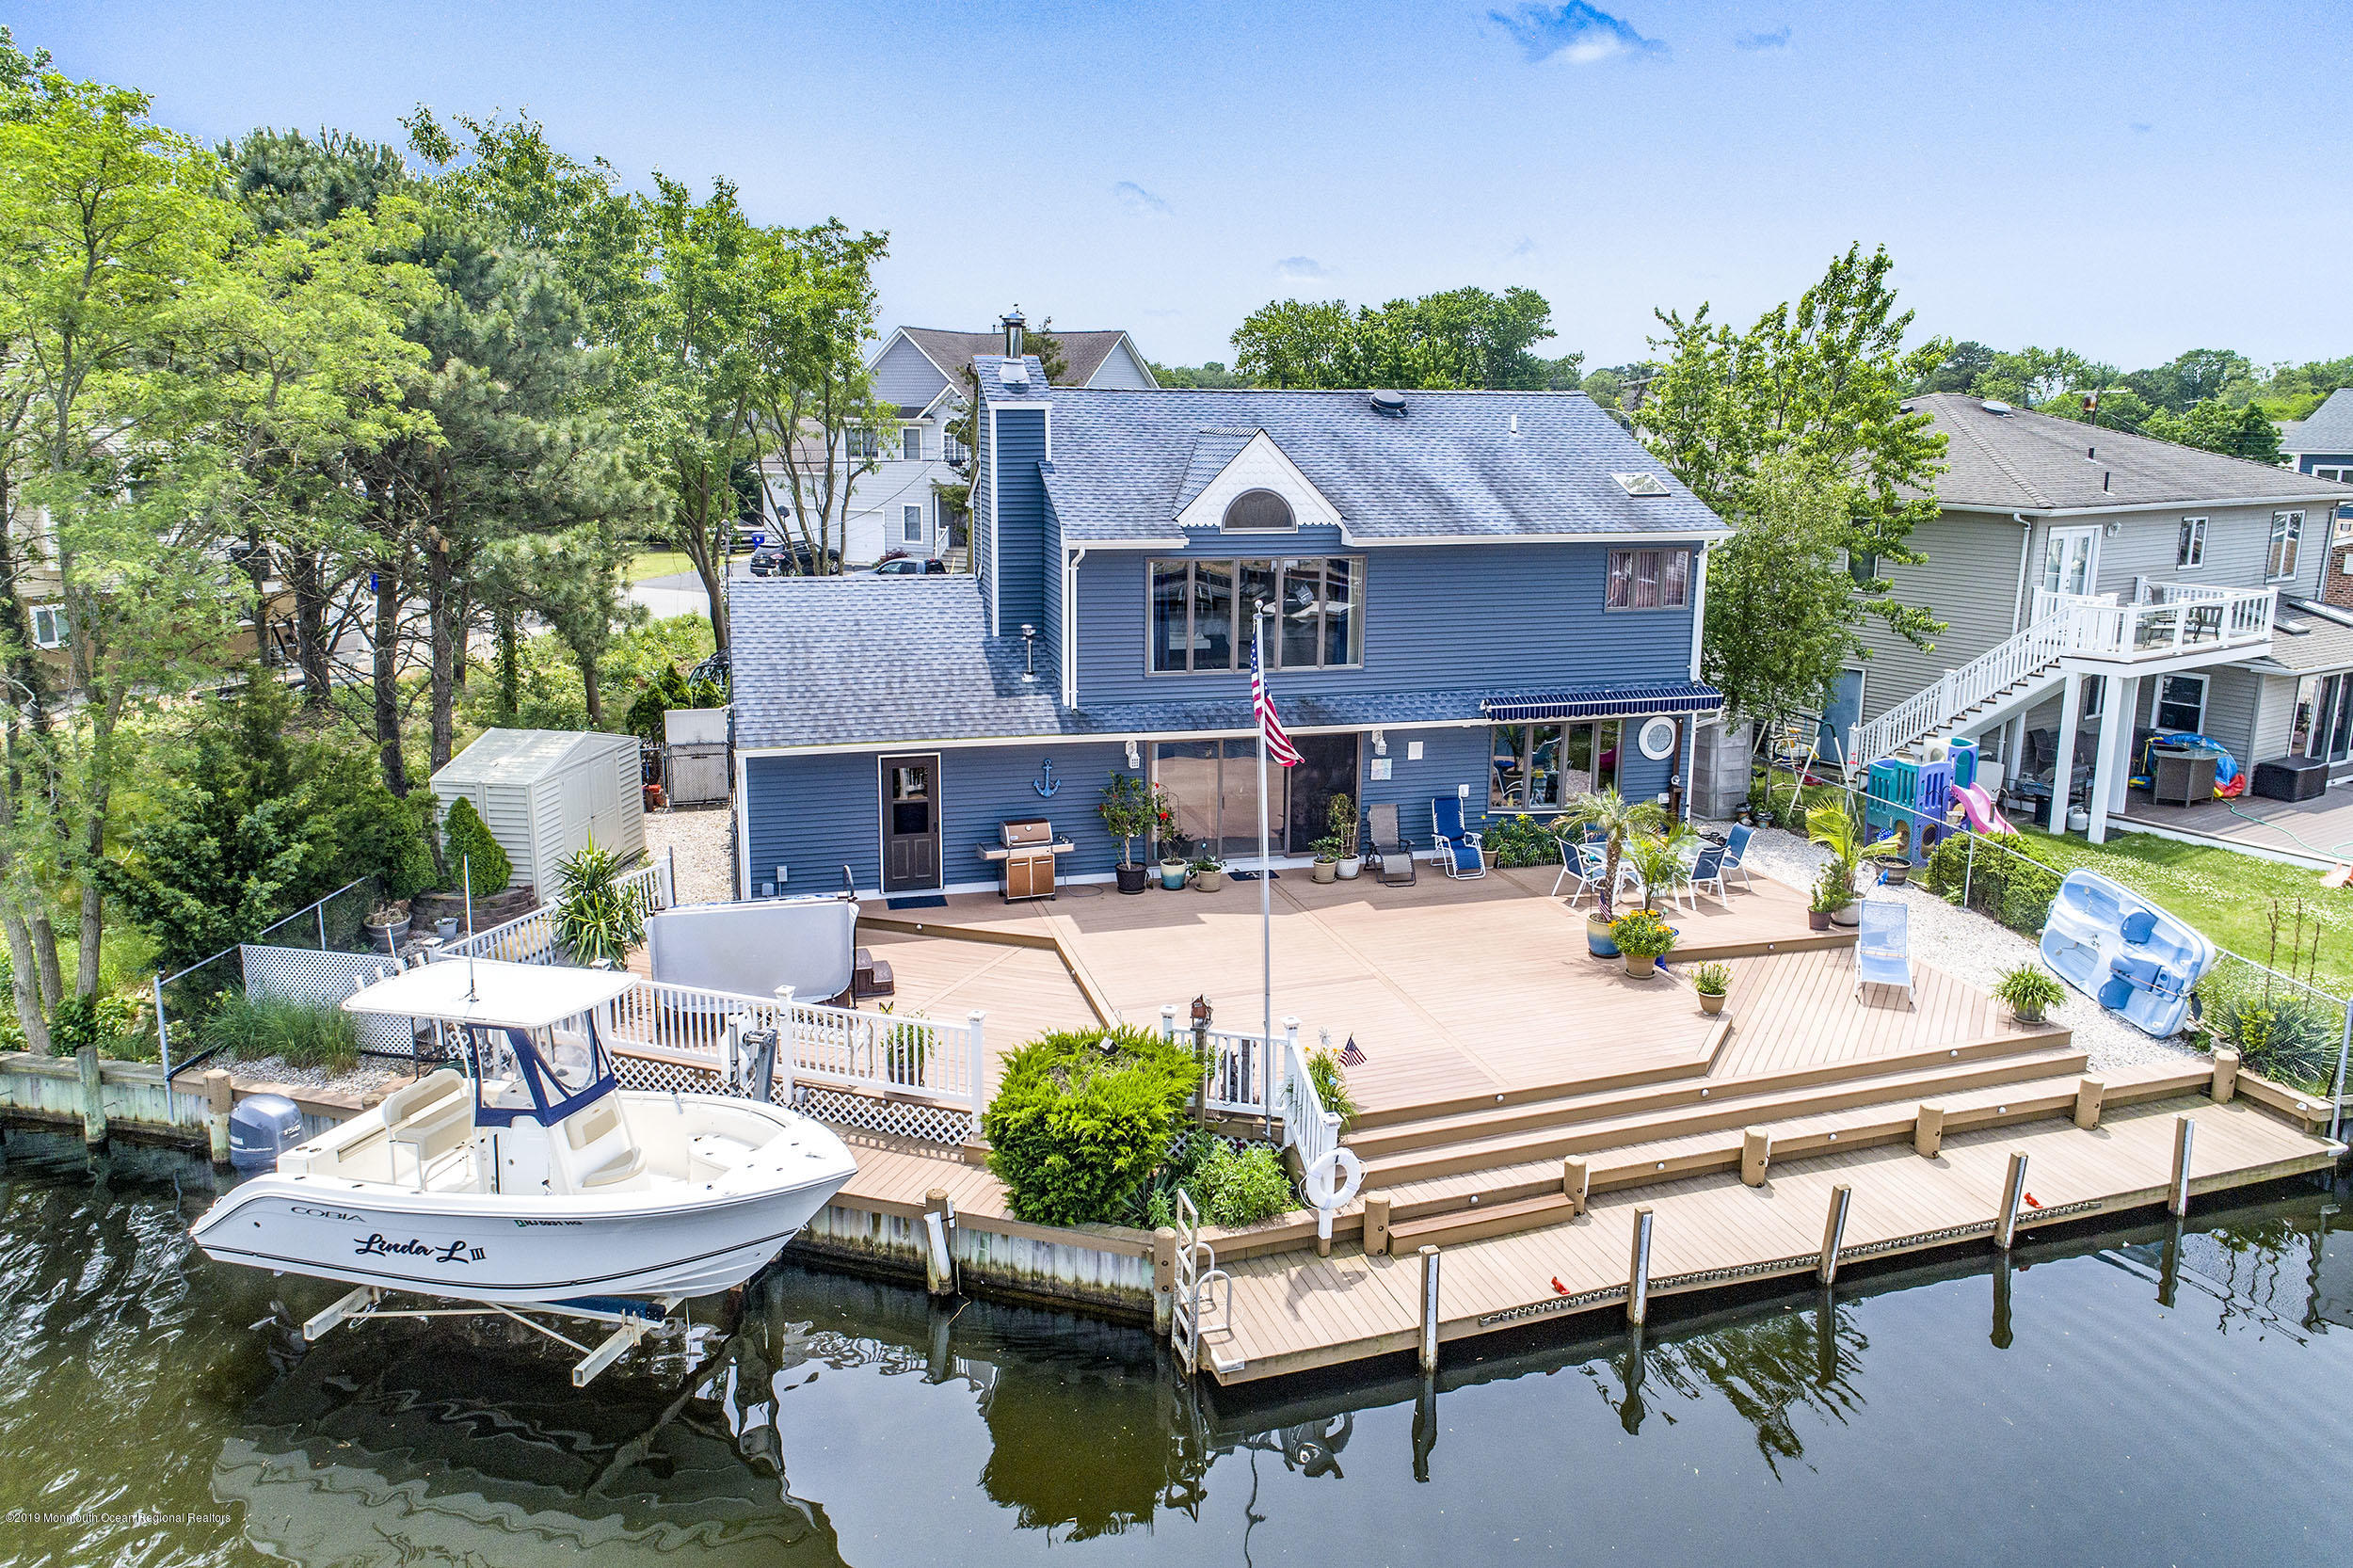 Boater's Paradise!! MOTIVATED SELLER! Protected within the lagoon, but a straight shot out to the bay. This 4BR, 3Ba home is  perfect for year-round shore living. Large open floor plan with stunning lagoon views. 2nd floor MBR must be seen to be believed.  Expansive Trex deck built for an entertainer's dream.  Winter blues, not a problem. Hop into your 6 person hot tub and enjoy the good life.